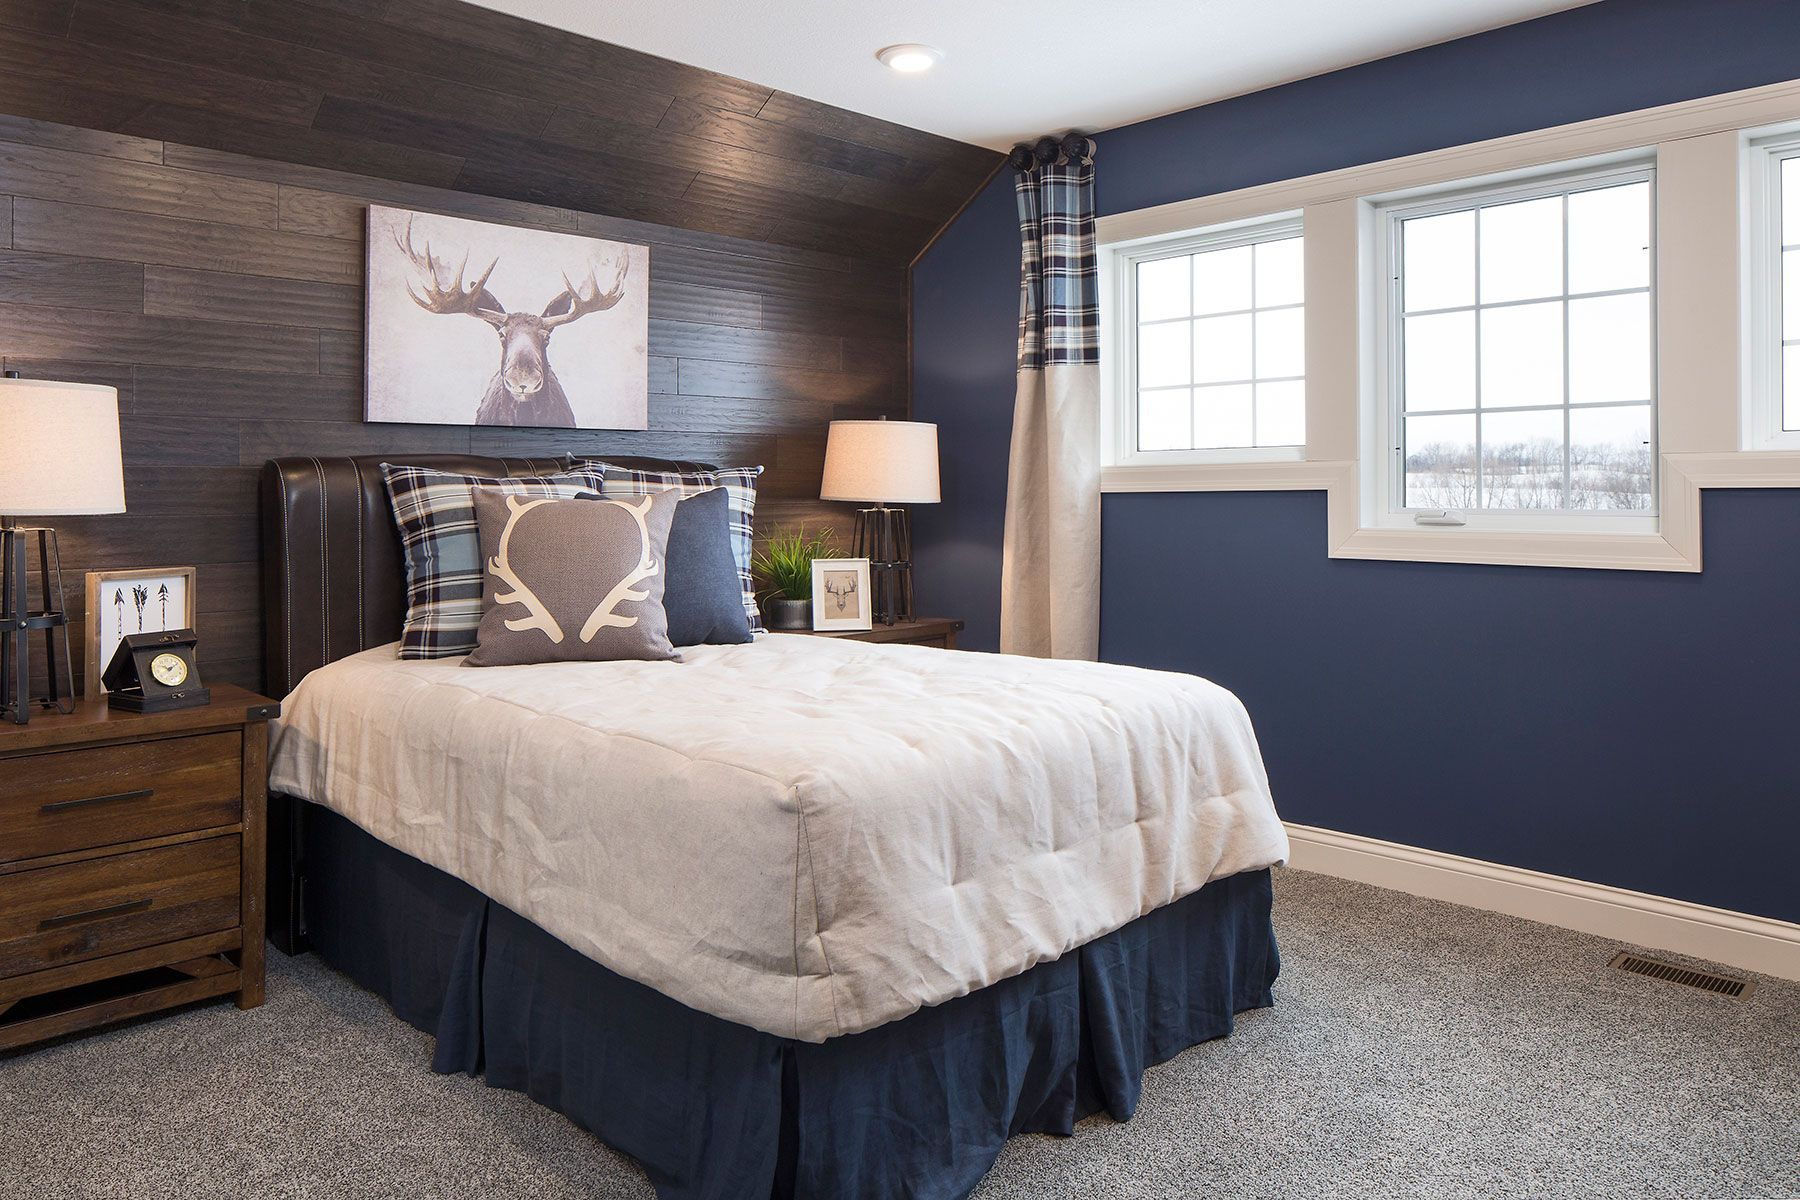 Bedroom featured in the Elmwood IV By M/I Homes in Minneapolis-St. Paul, MN